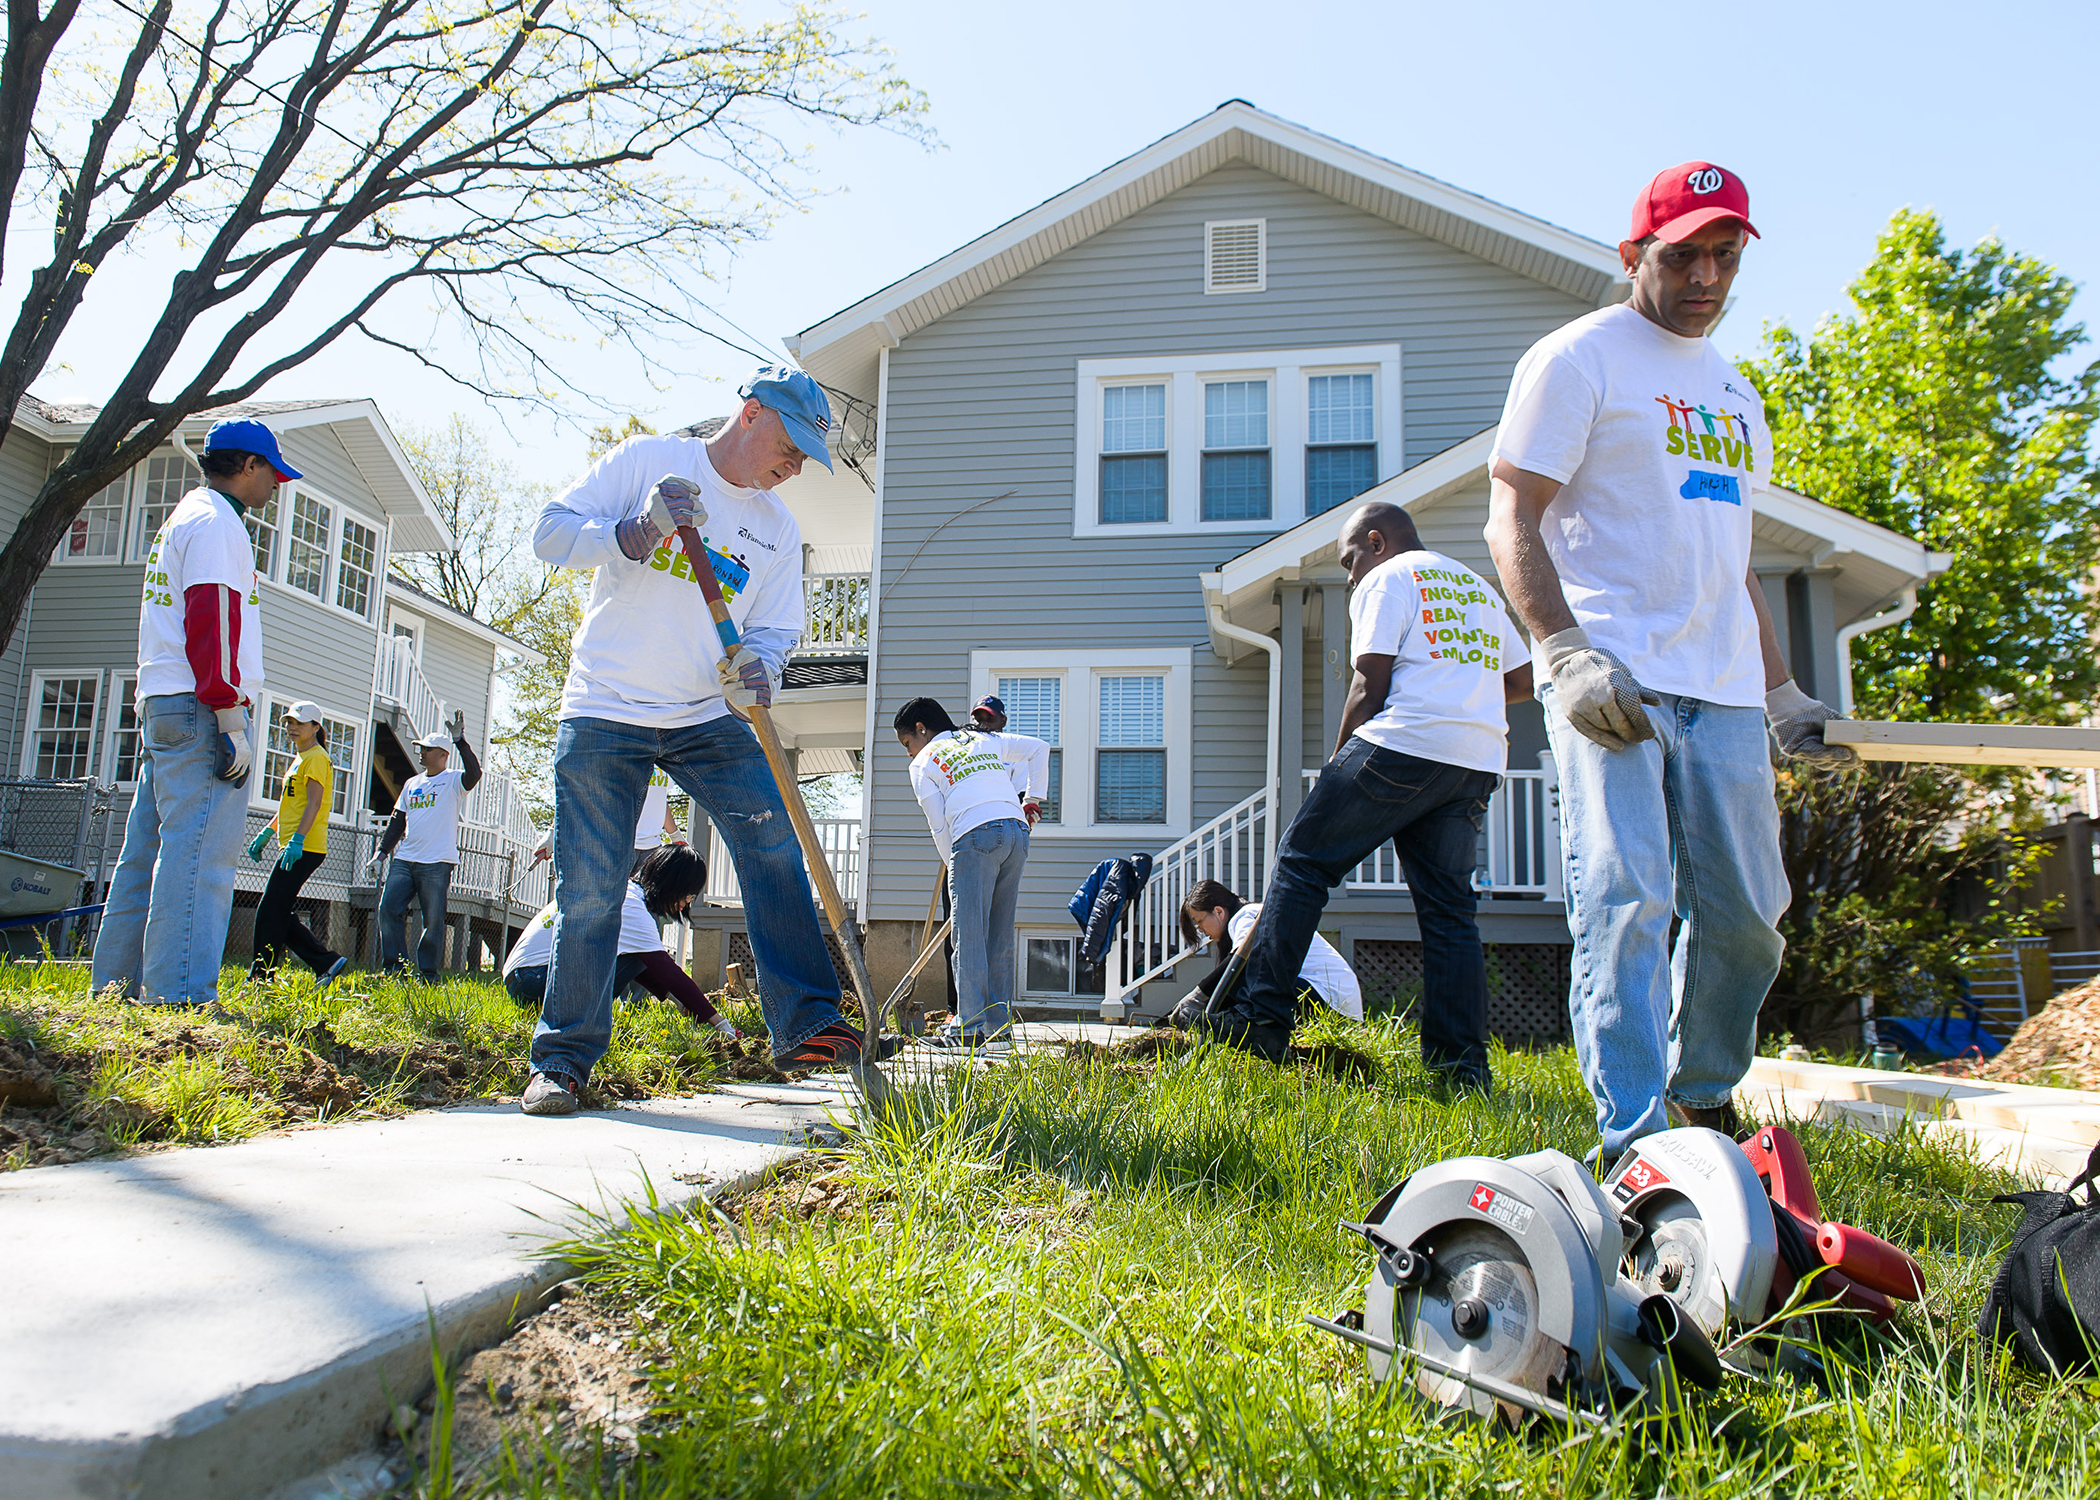 Fannie Mae Volunteers build and repair garden and landscaping for the Salvation Army of Alexandria along with Rebuilding Together.  The create an outdoor space and community gardens for families living in transitional housing units to enjoy,